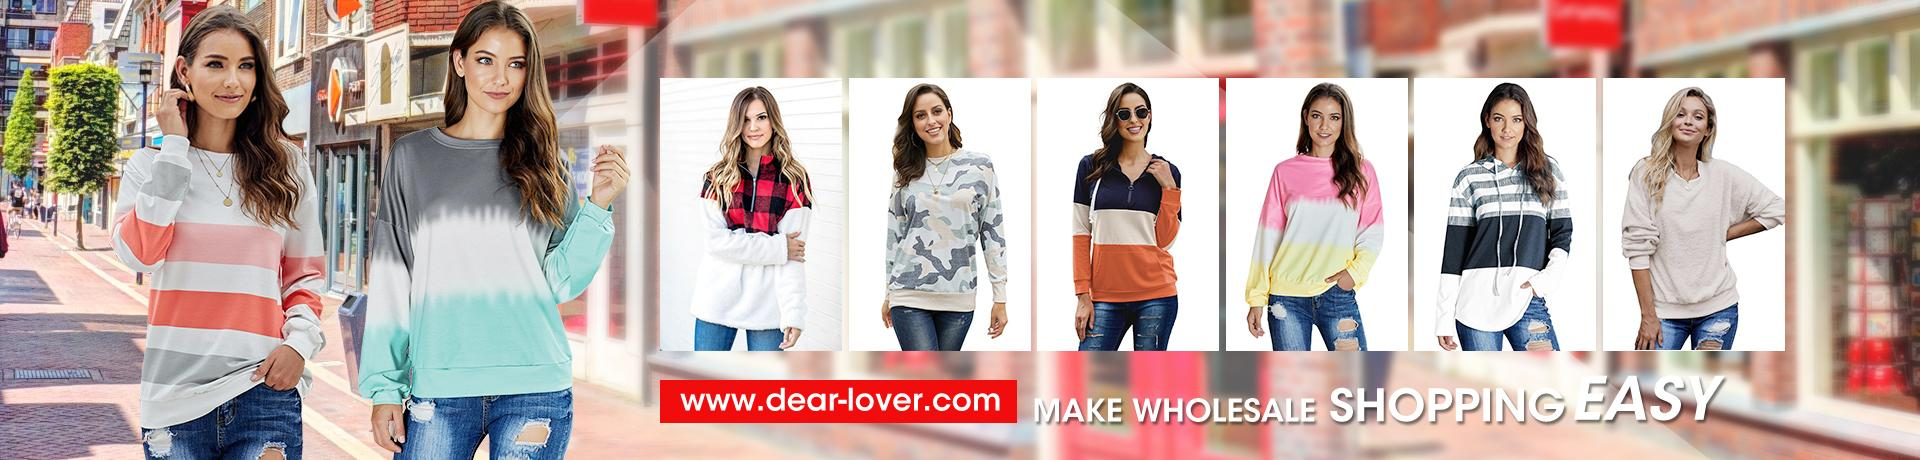 Wholesale Sweatshirts Hoodies for Women